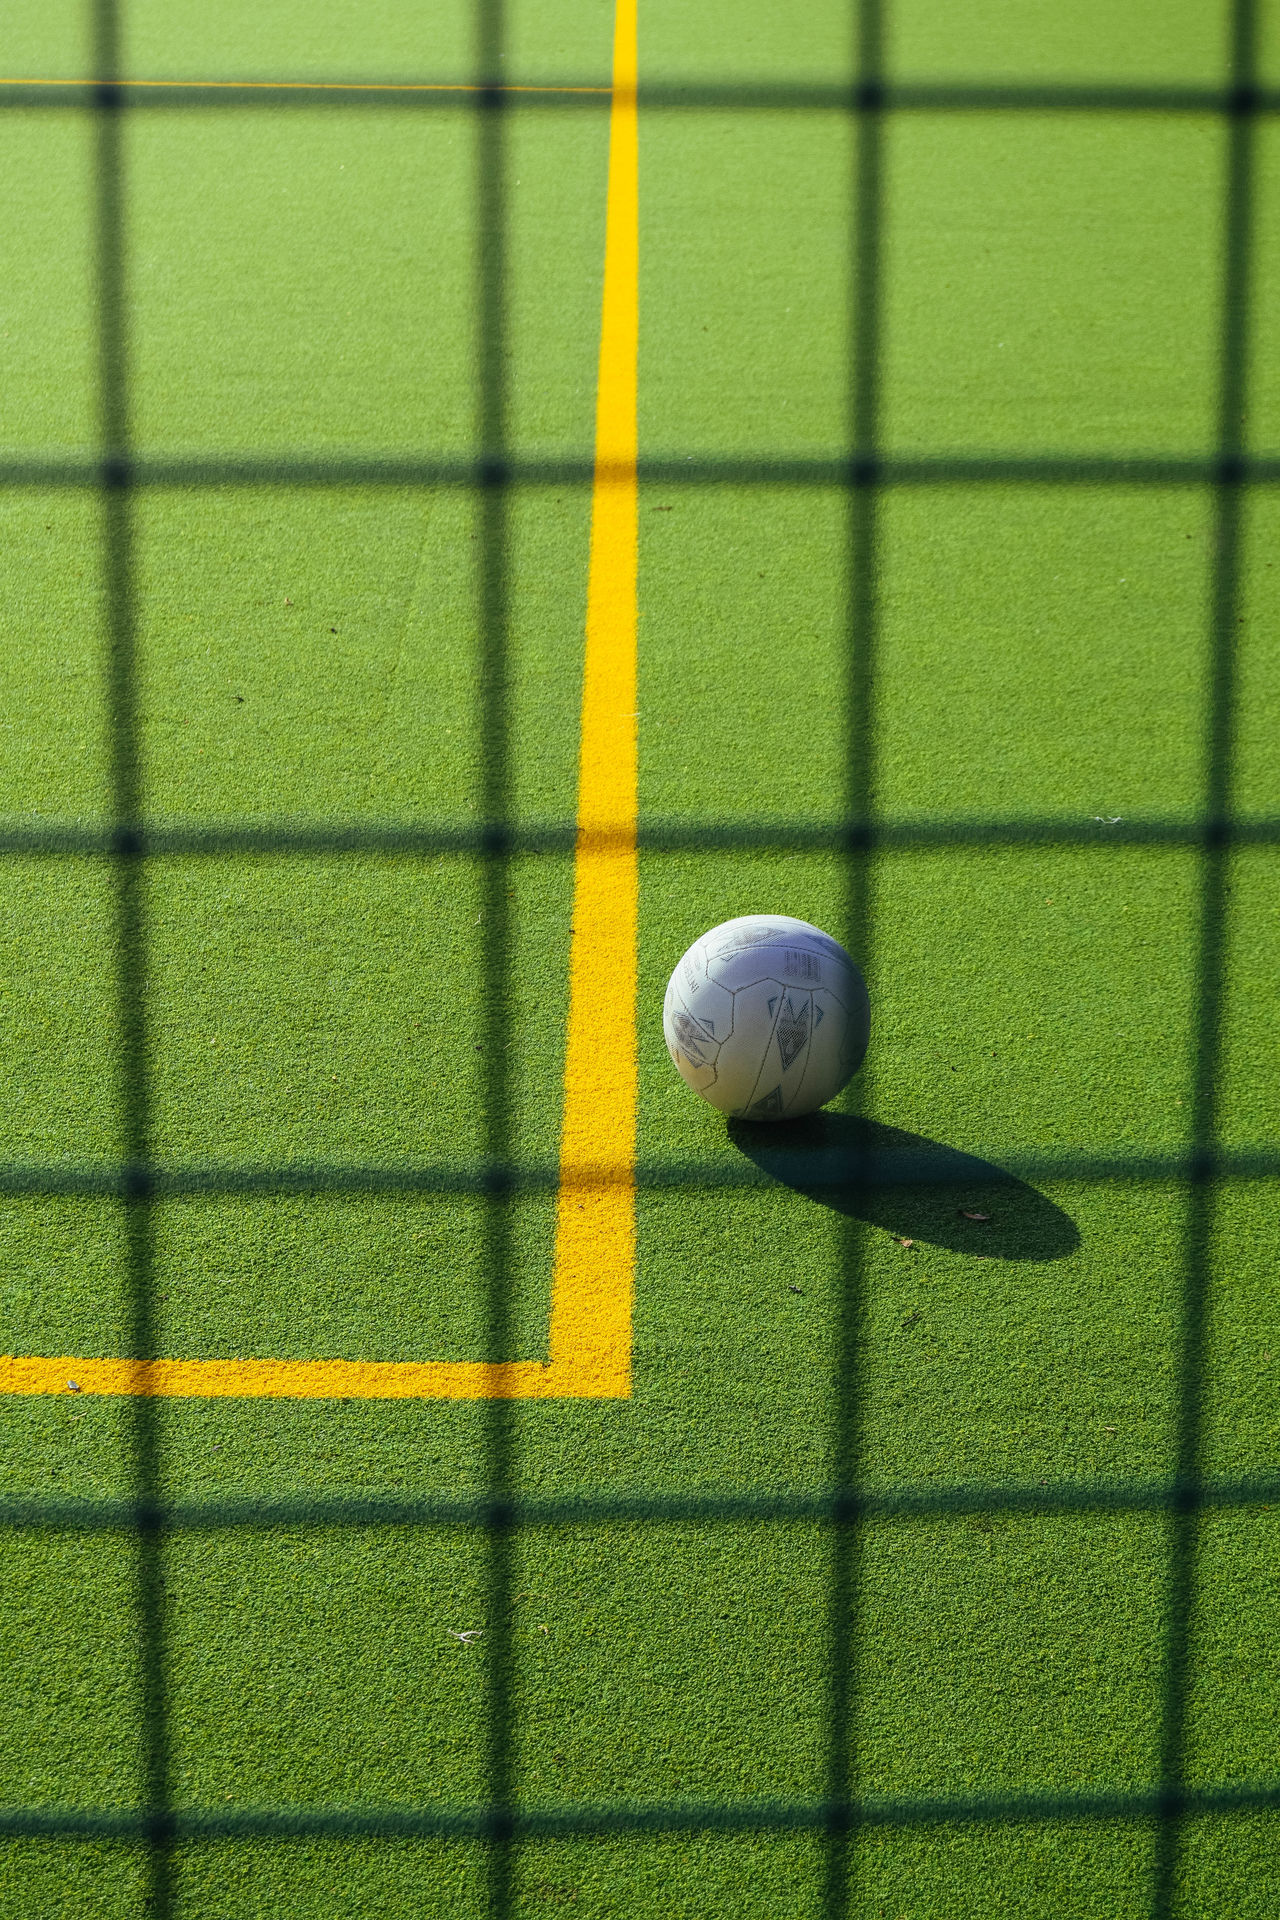 Artificial Grass Ball Close-up Day Football Net No People Outdoors Soccer Sport Sunlight Yellow Astro Turf Line Marking Sports Court